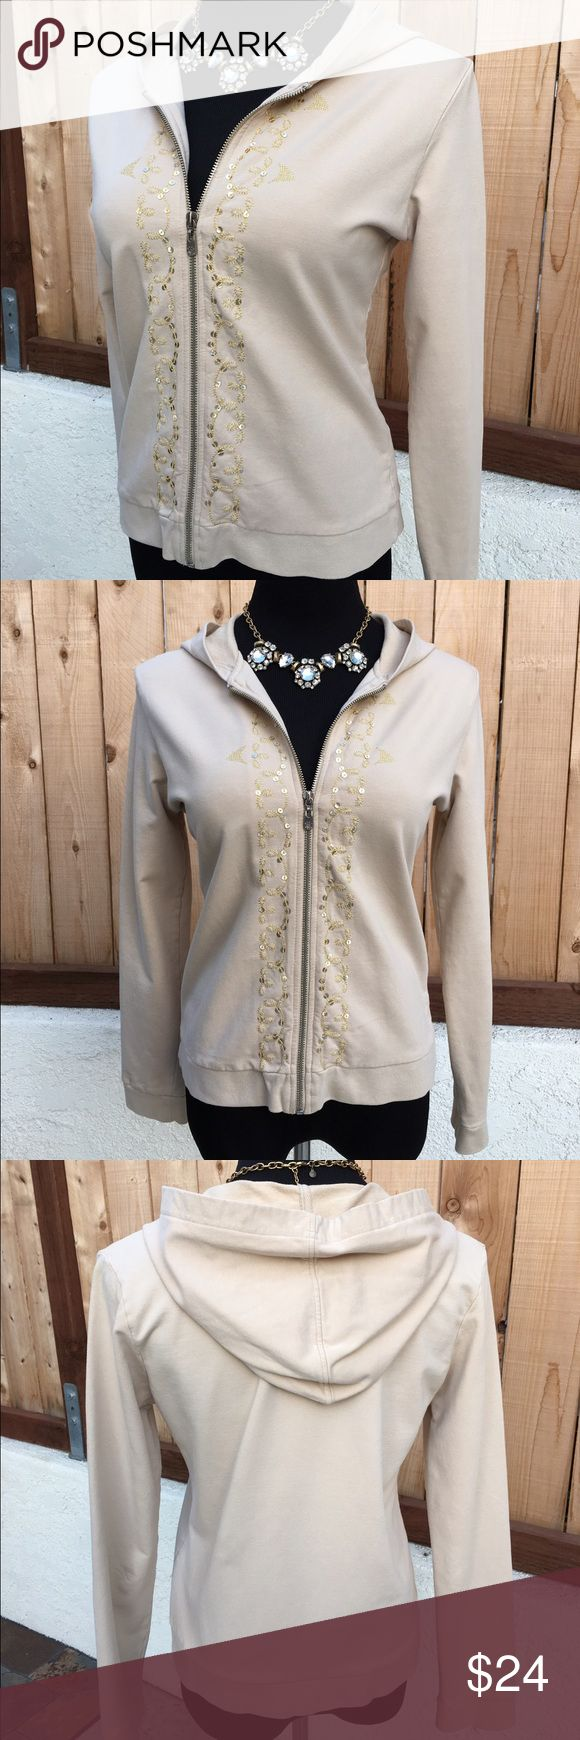 "Cream Zip Up Hoodie Embroidered with gold metallic thread & gold sequins. This long sleeve, cream colored zip up hoodie is in excellent preloved condition. Measurement from pit to pit is 19.25"". NO spots or damage. From Saks Fifth Avenue. BCBGMaxAzria Tops Sweatshirts & Hoodies"